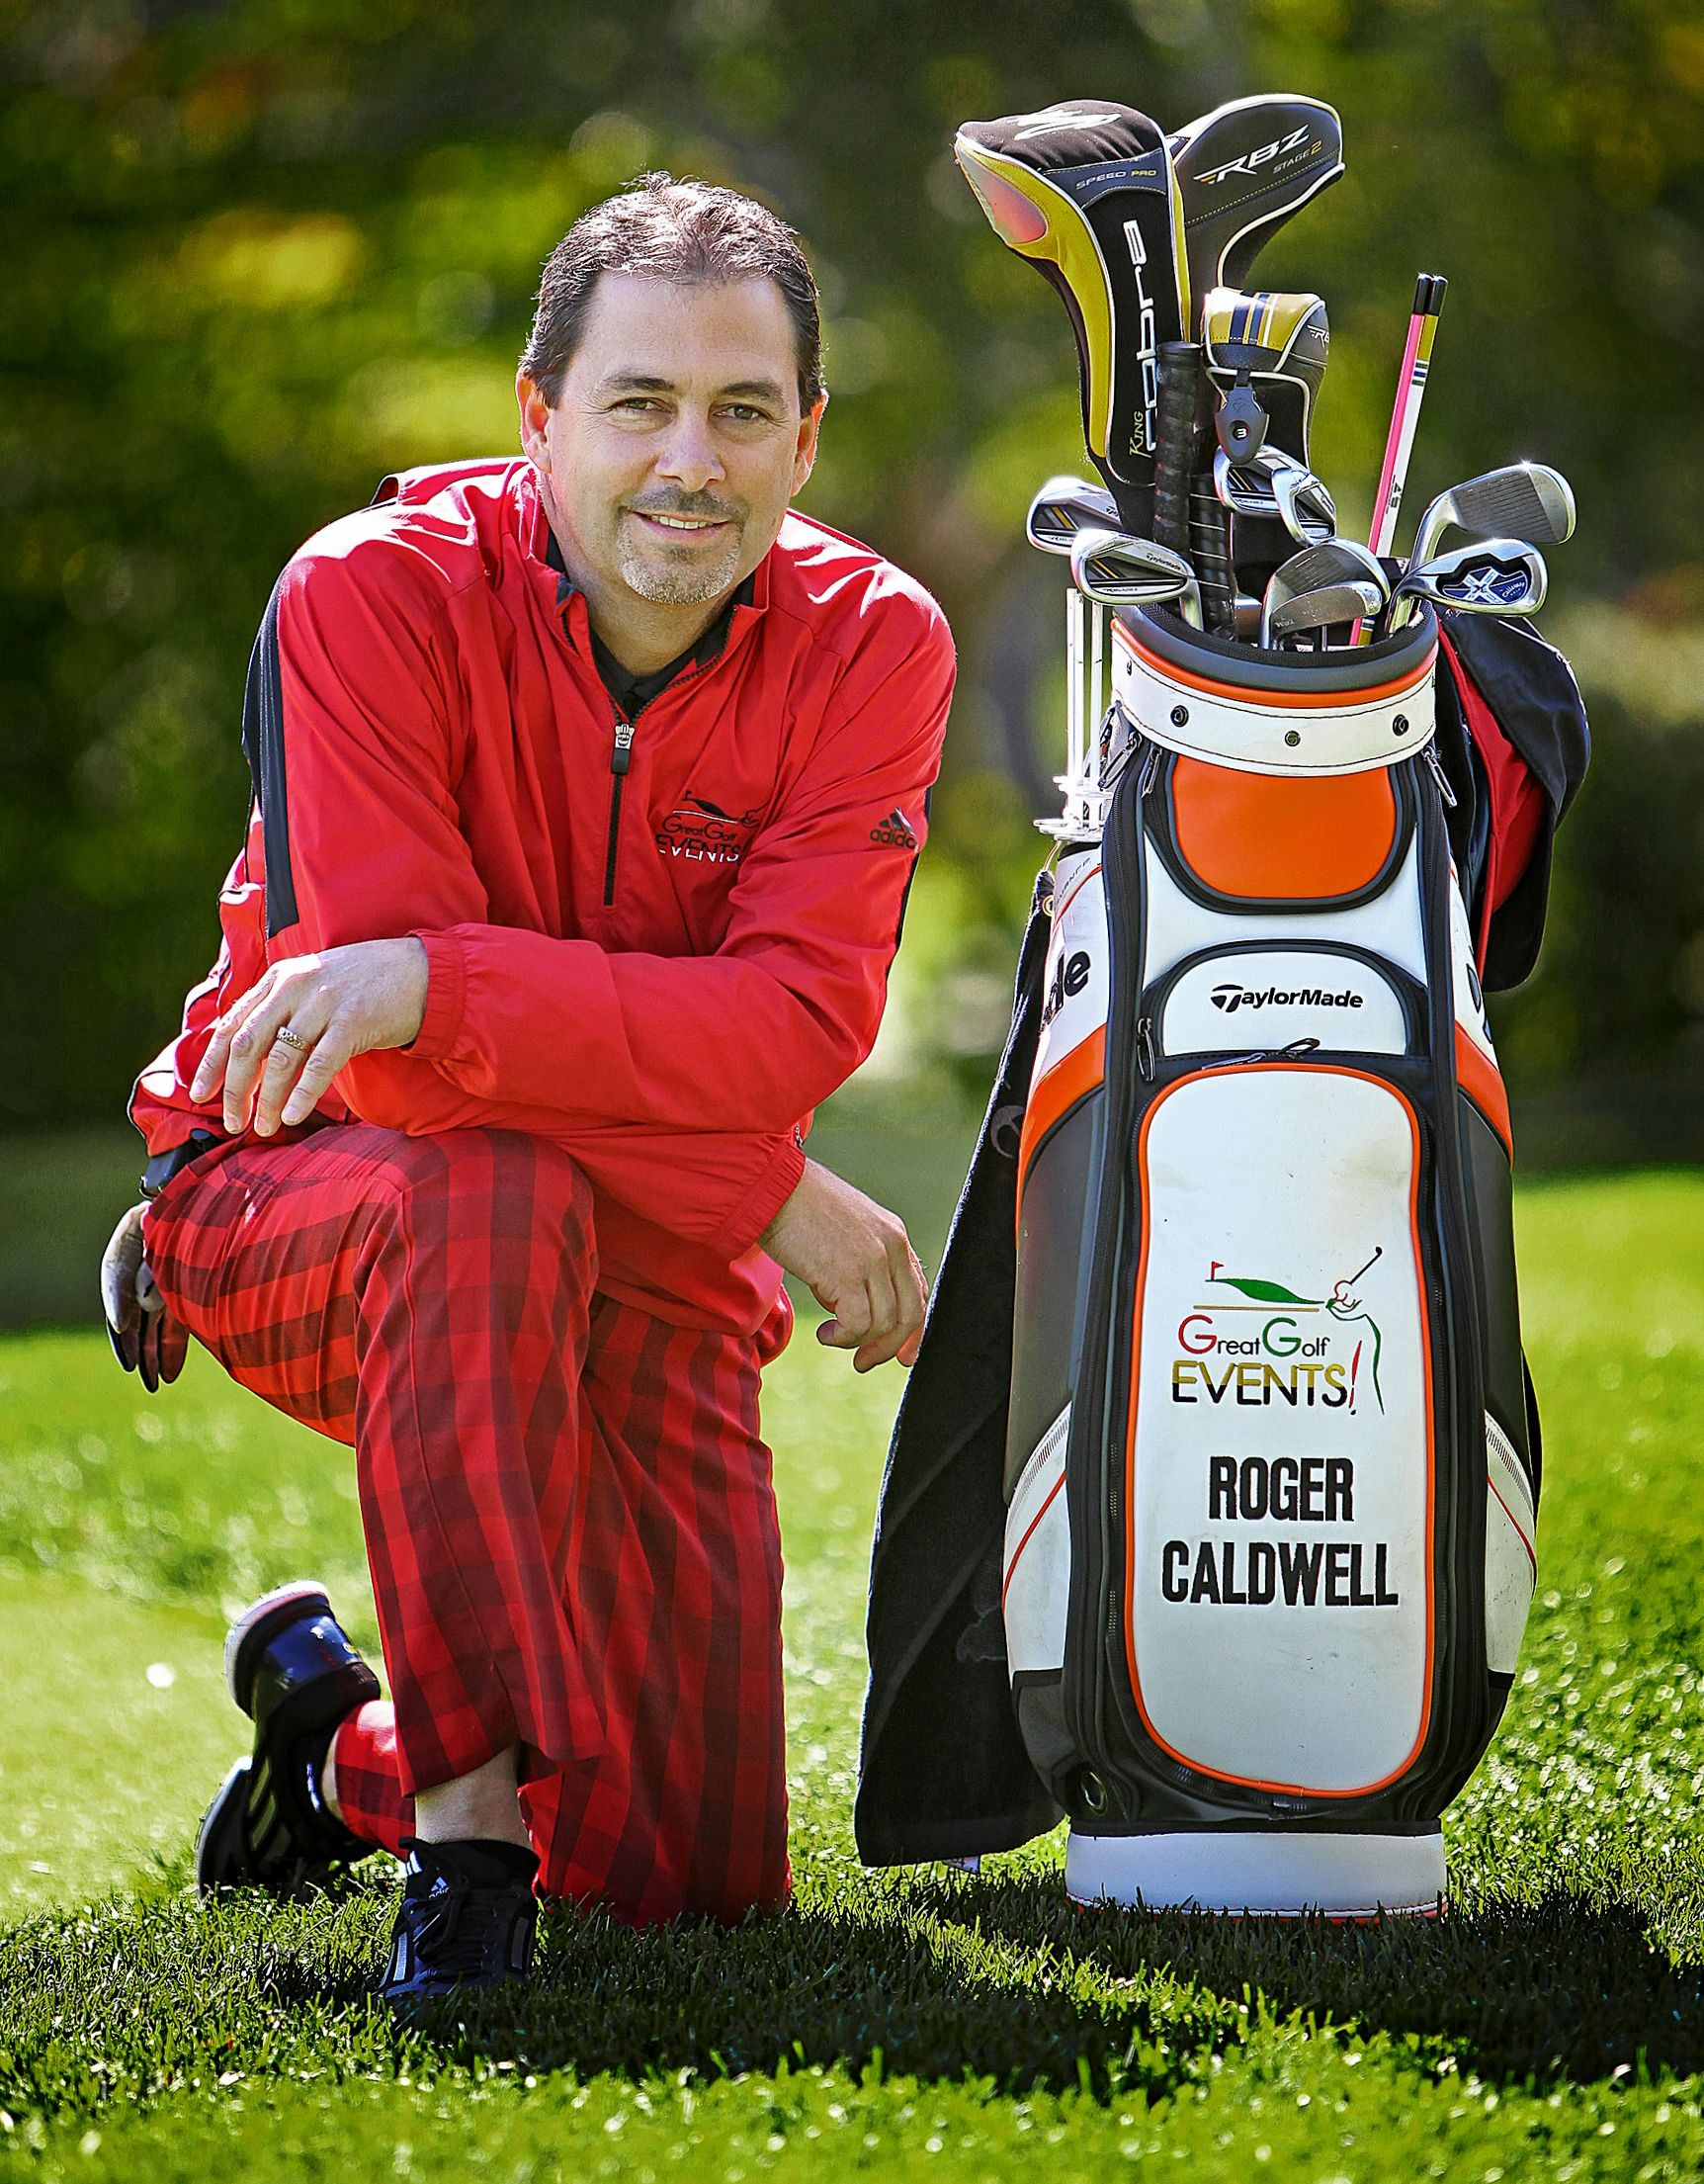 Roger Caldwell - Golf Entertainer